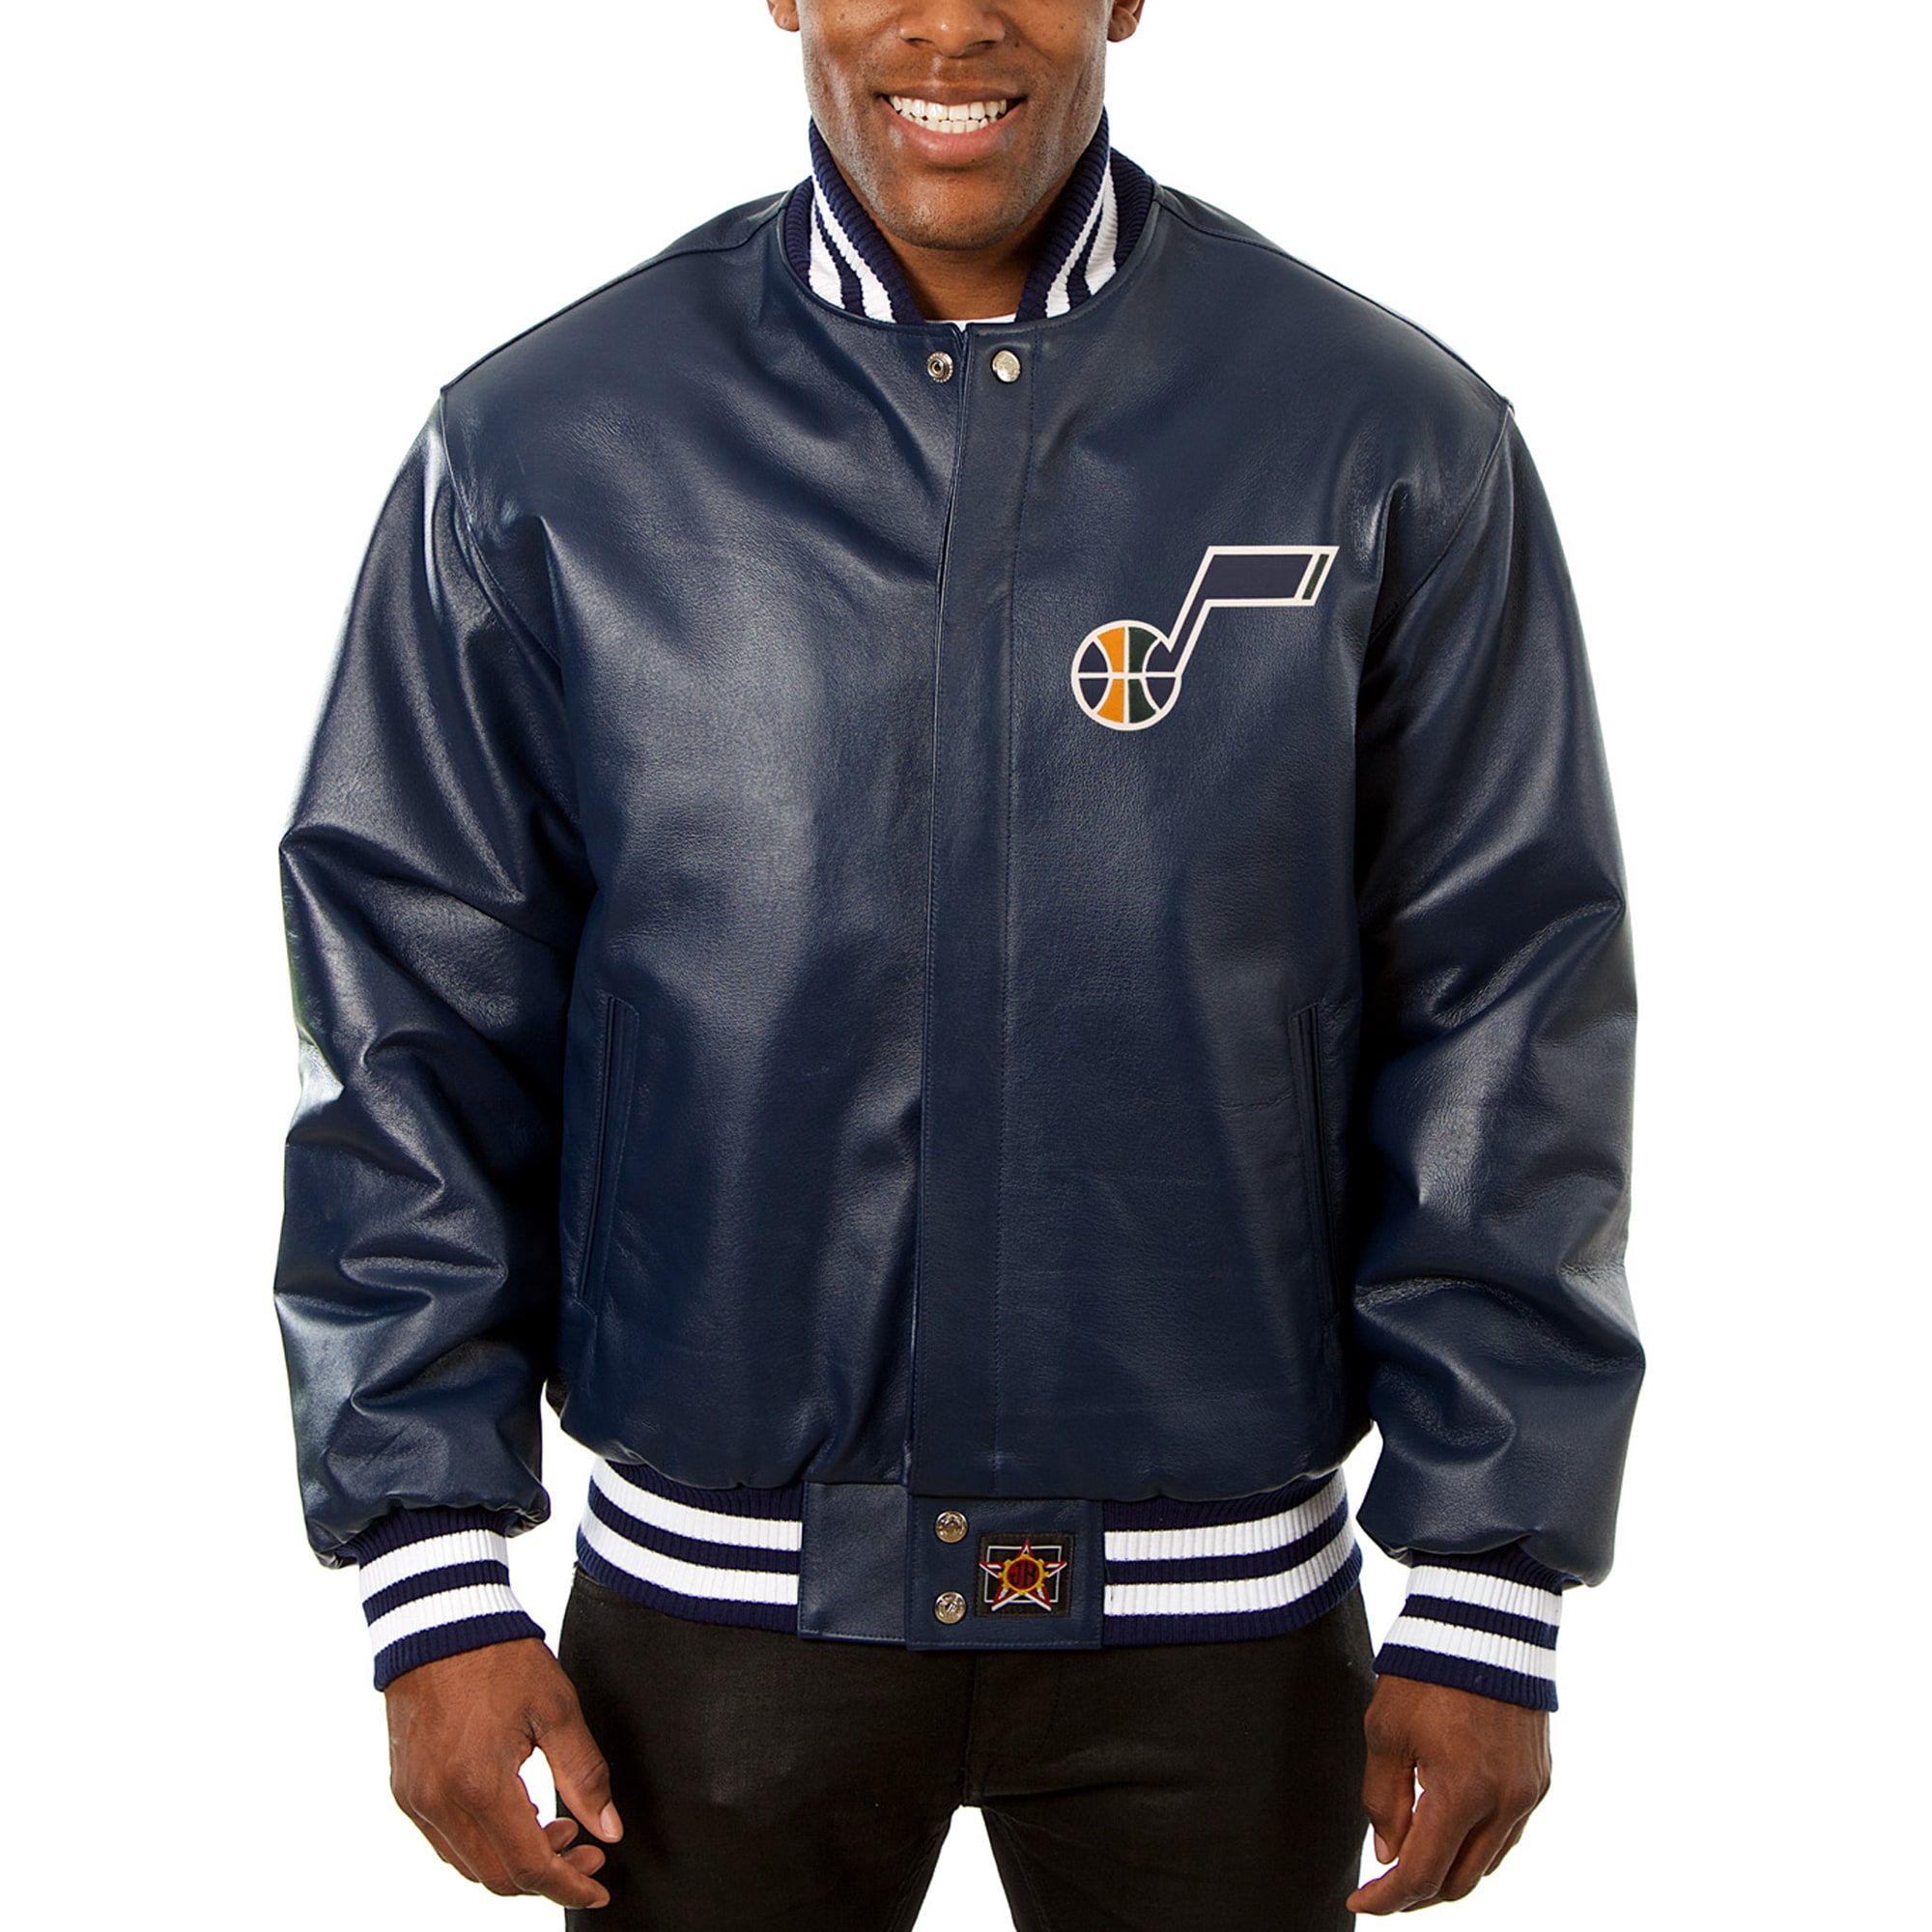 Utah Jazz JH Design Big & Tall All-Leather Full-Snap Jacket - Navy